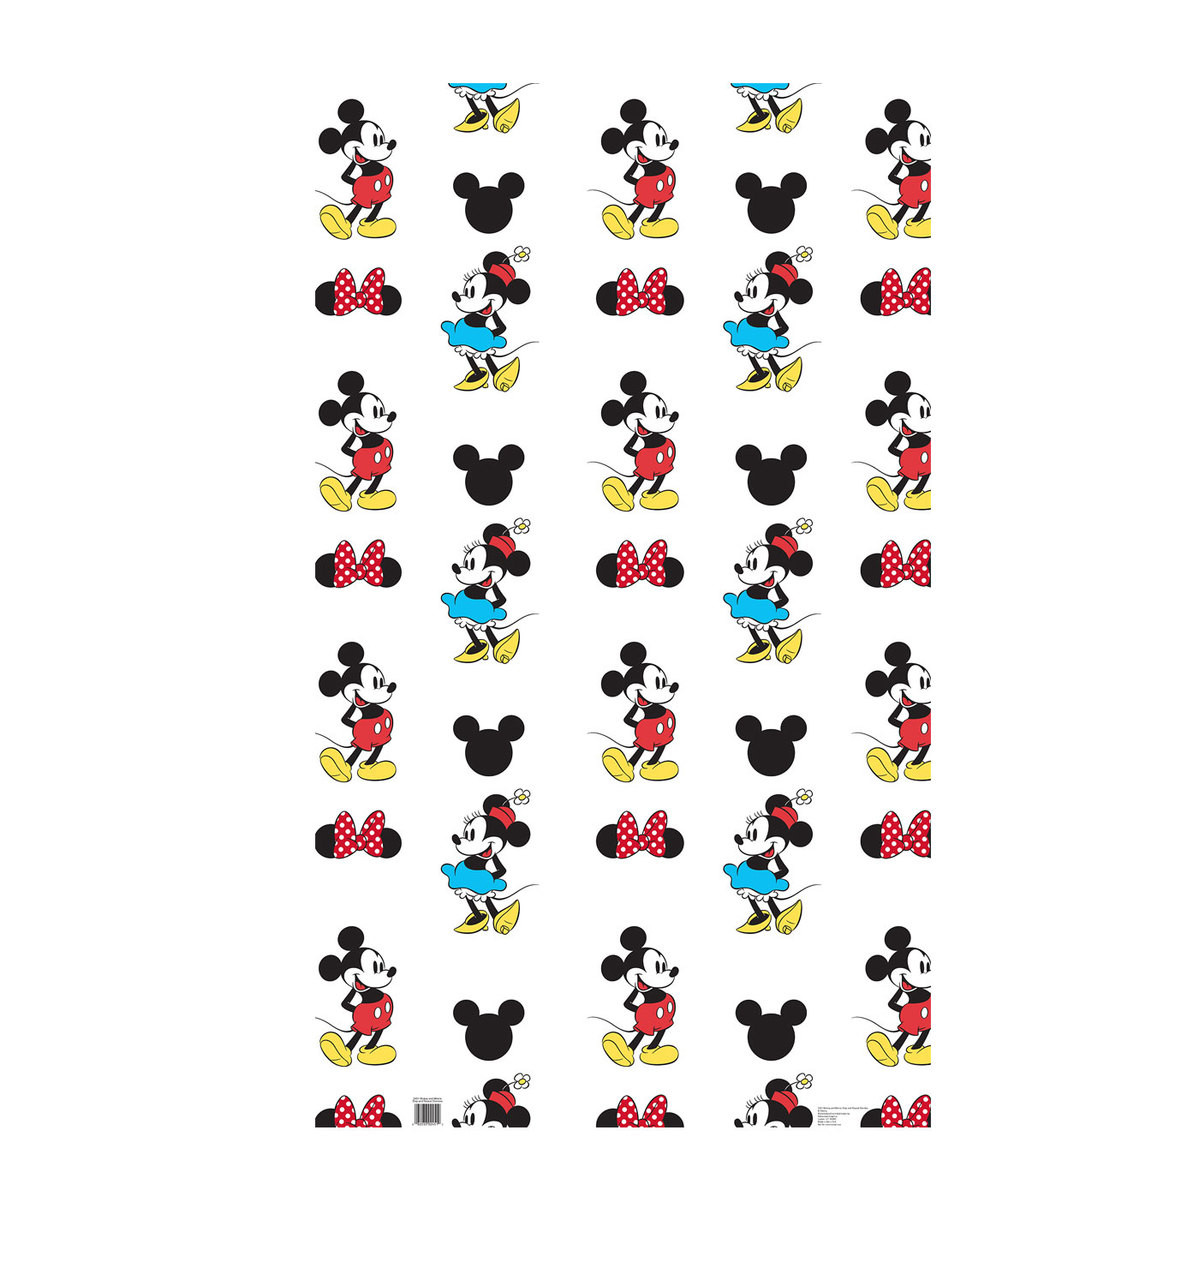 Life-size Mickey and Minnie Step and Repeat Standup Cardboard Standup